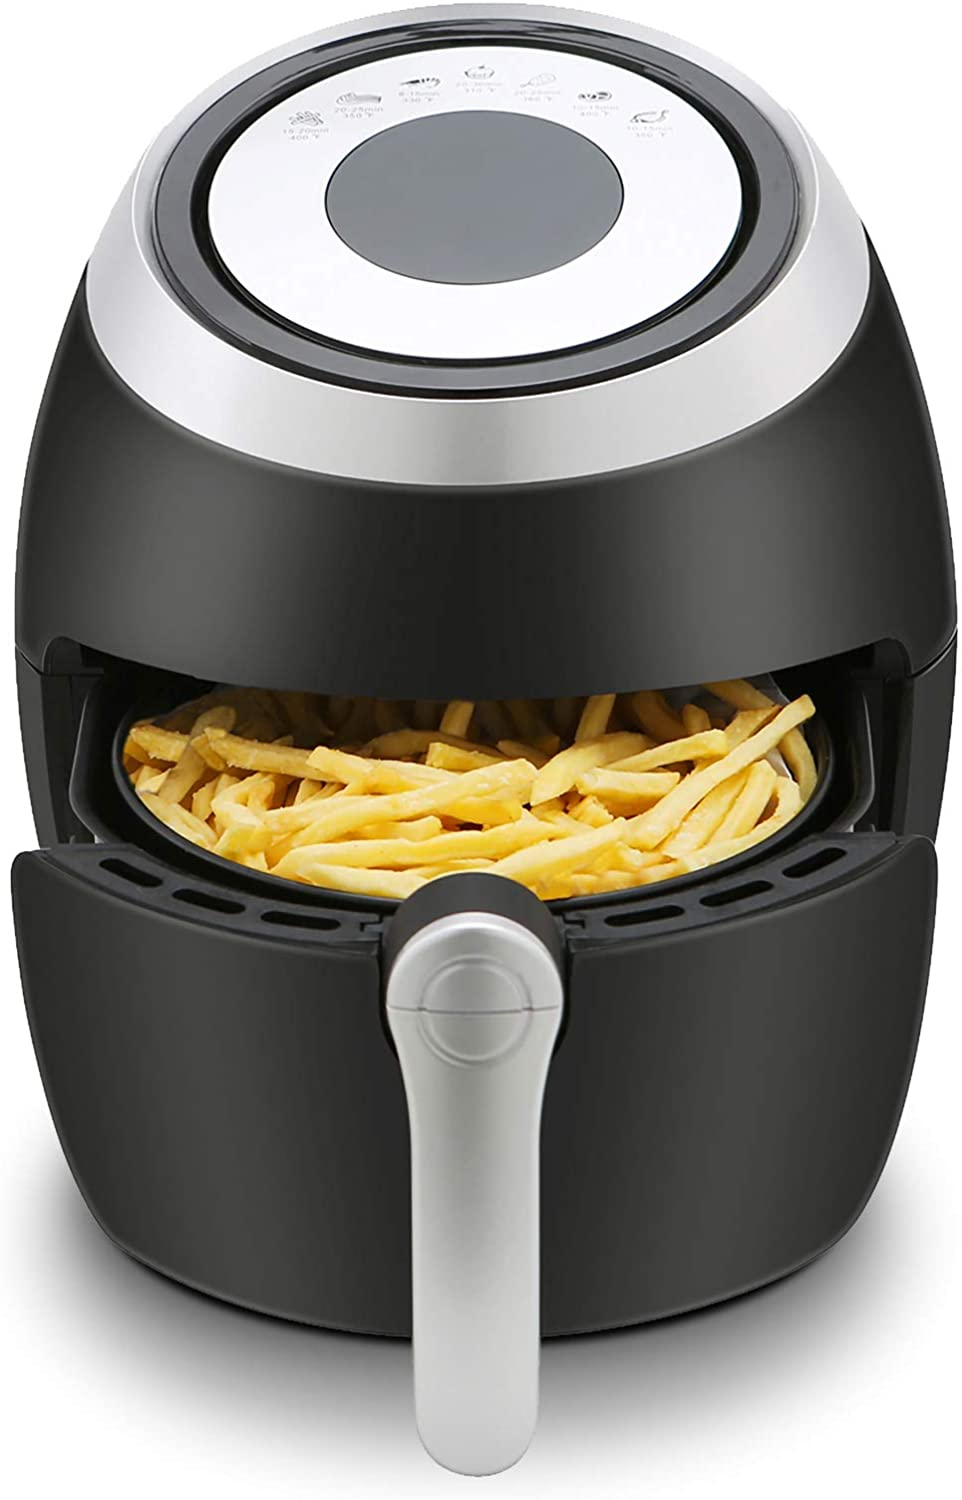 Antarctic Star 3.8 Quart Air Fryer Hot Deep Fryer Free Chip Digital Touch Screen 7 Presets, Auto Shutoff Nonstick Basket with Cookbook Oilless Cooker Roasting/Baking 1700W (7 Presets+Digital, 3.8QT)